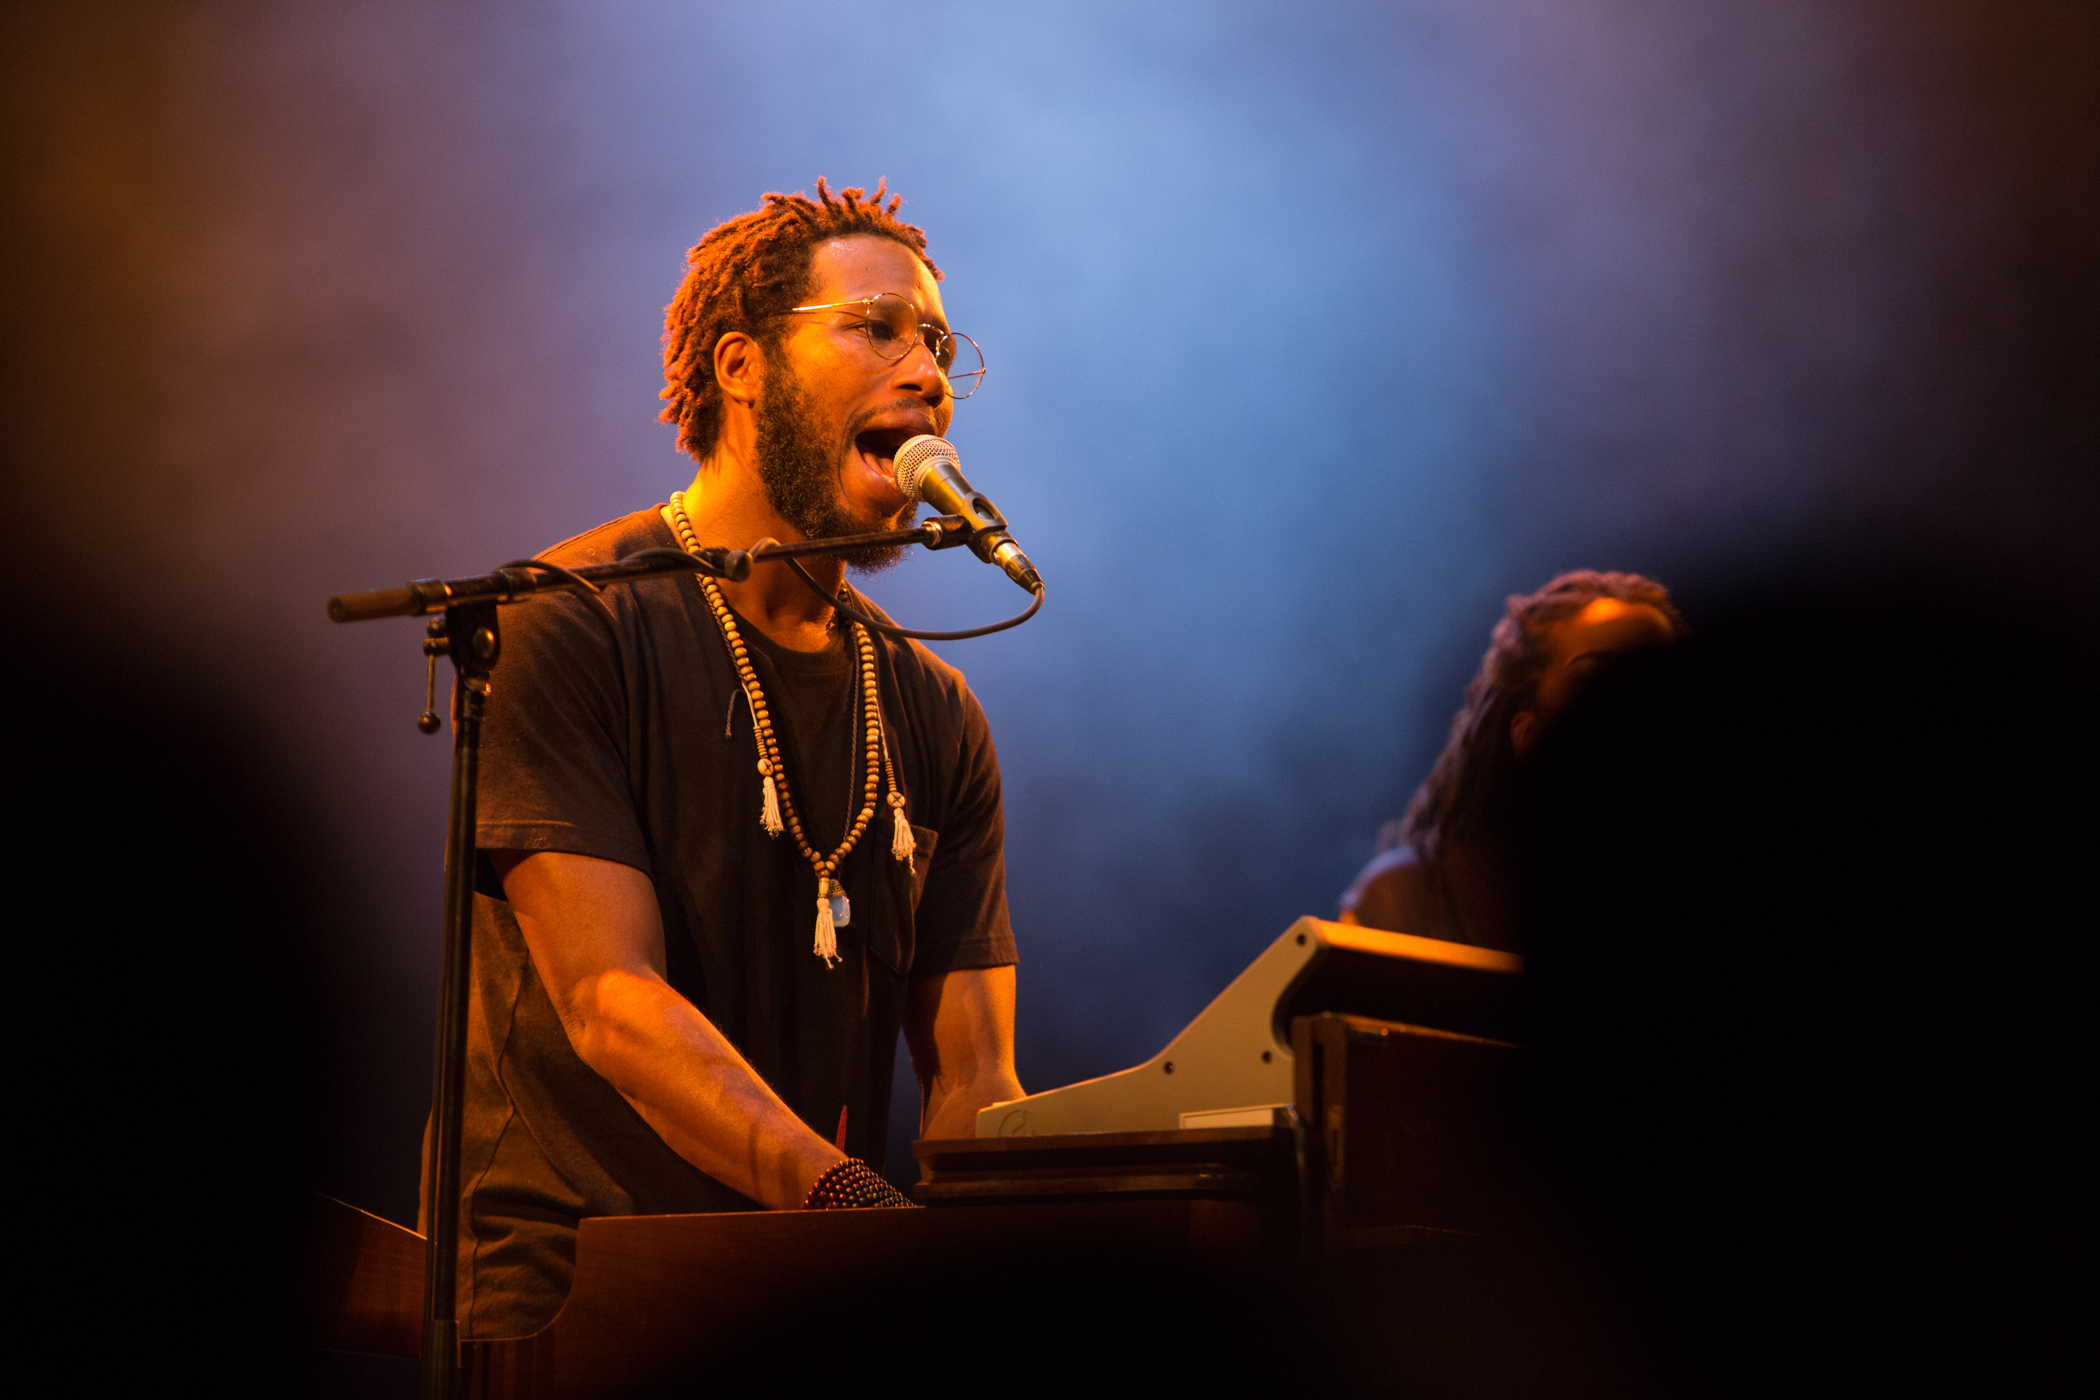 Cory Henry Tour Official Vip Packages Cid Entertainment